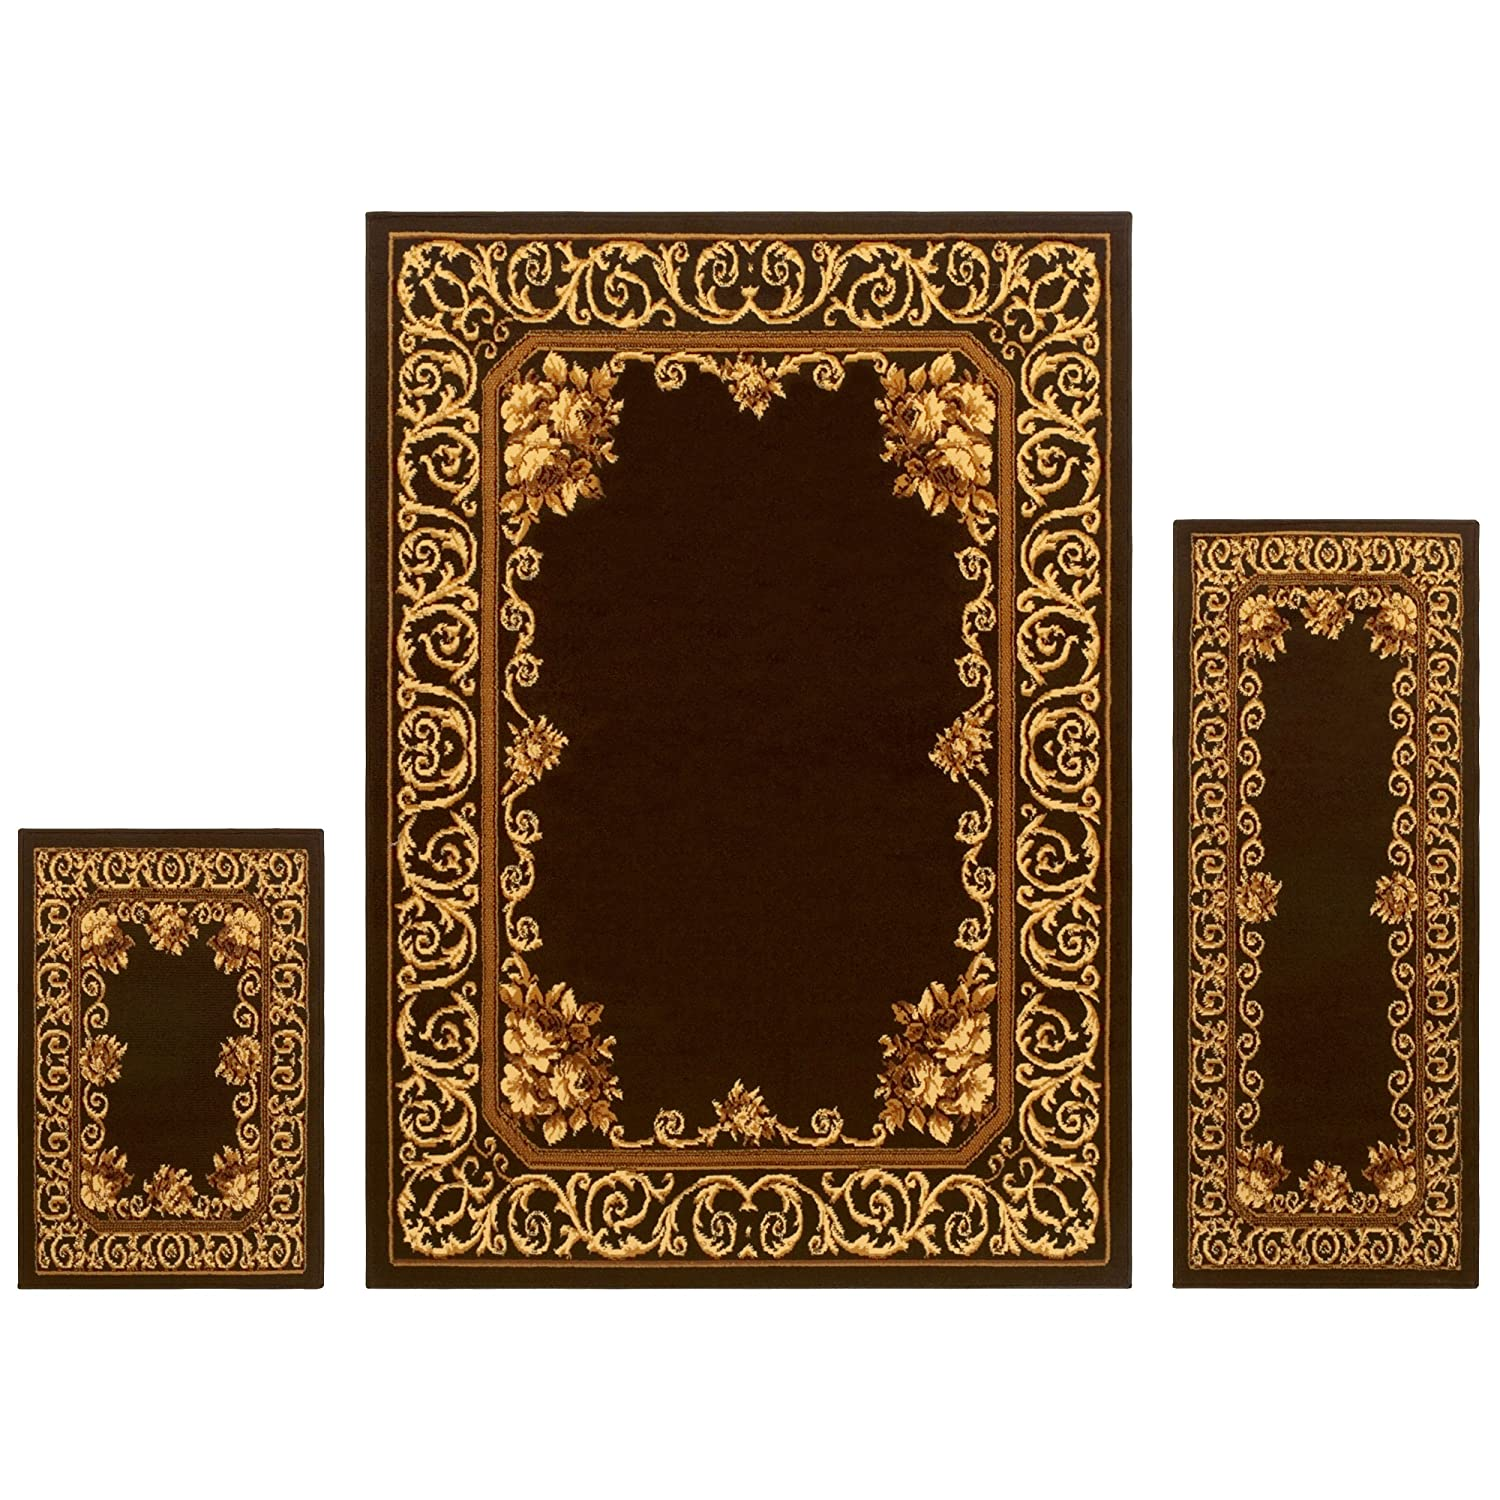 Superior Elton Collection 3-Piece Rug Set, Attractive Rugs Jute Backing, Durable Beautiful Woven Structure, Elegant Floral Medallion Area Rug Set - 2' x 3', 2' x 5 5' x 7' Rugs